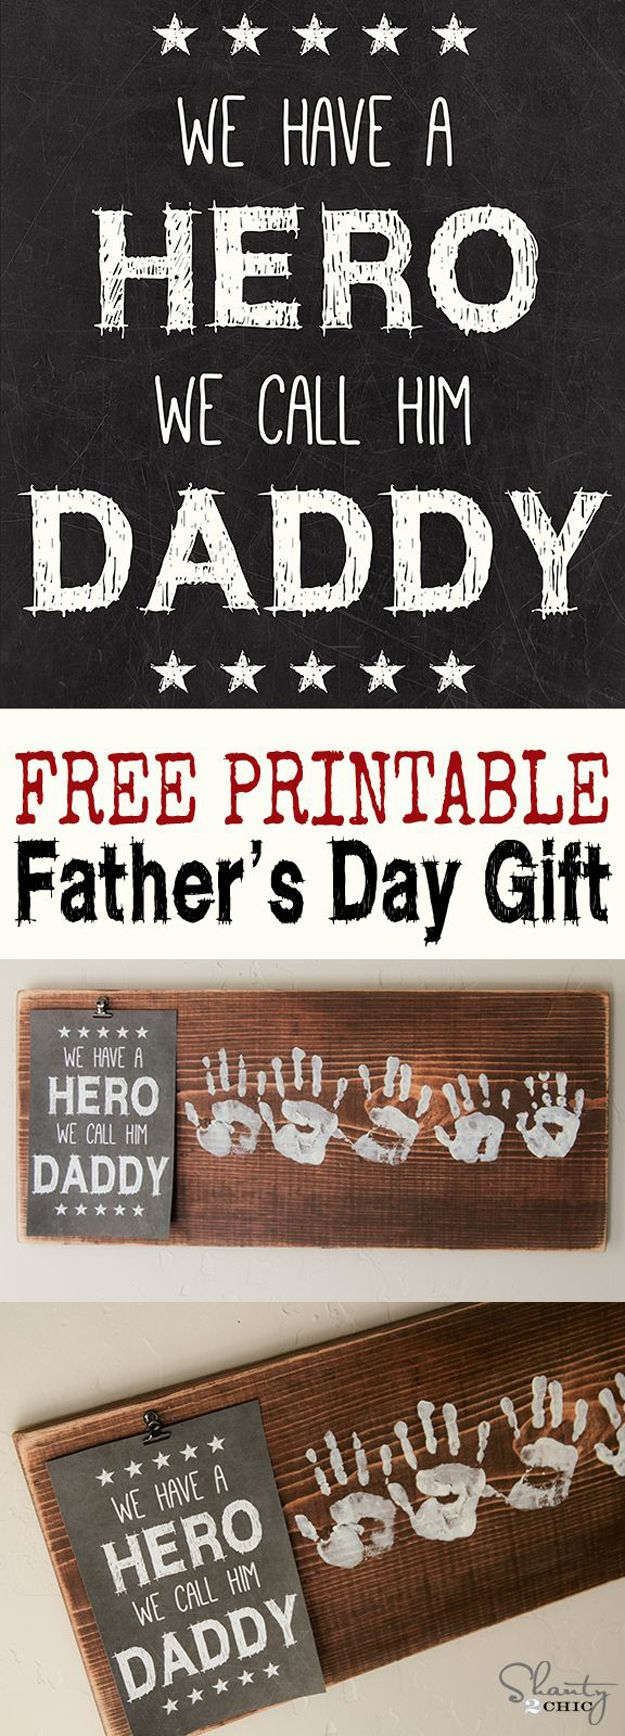 25 Cool DIY Father's Day Gift IdeasDeli Direct